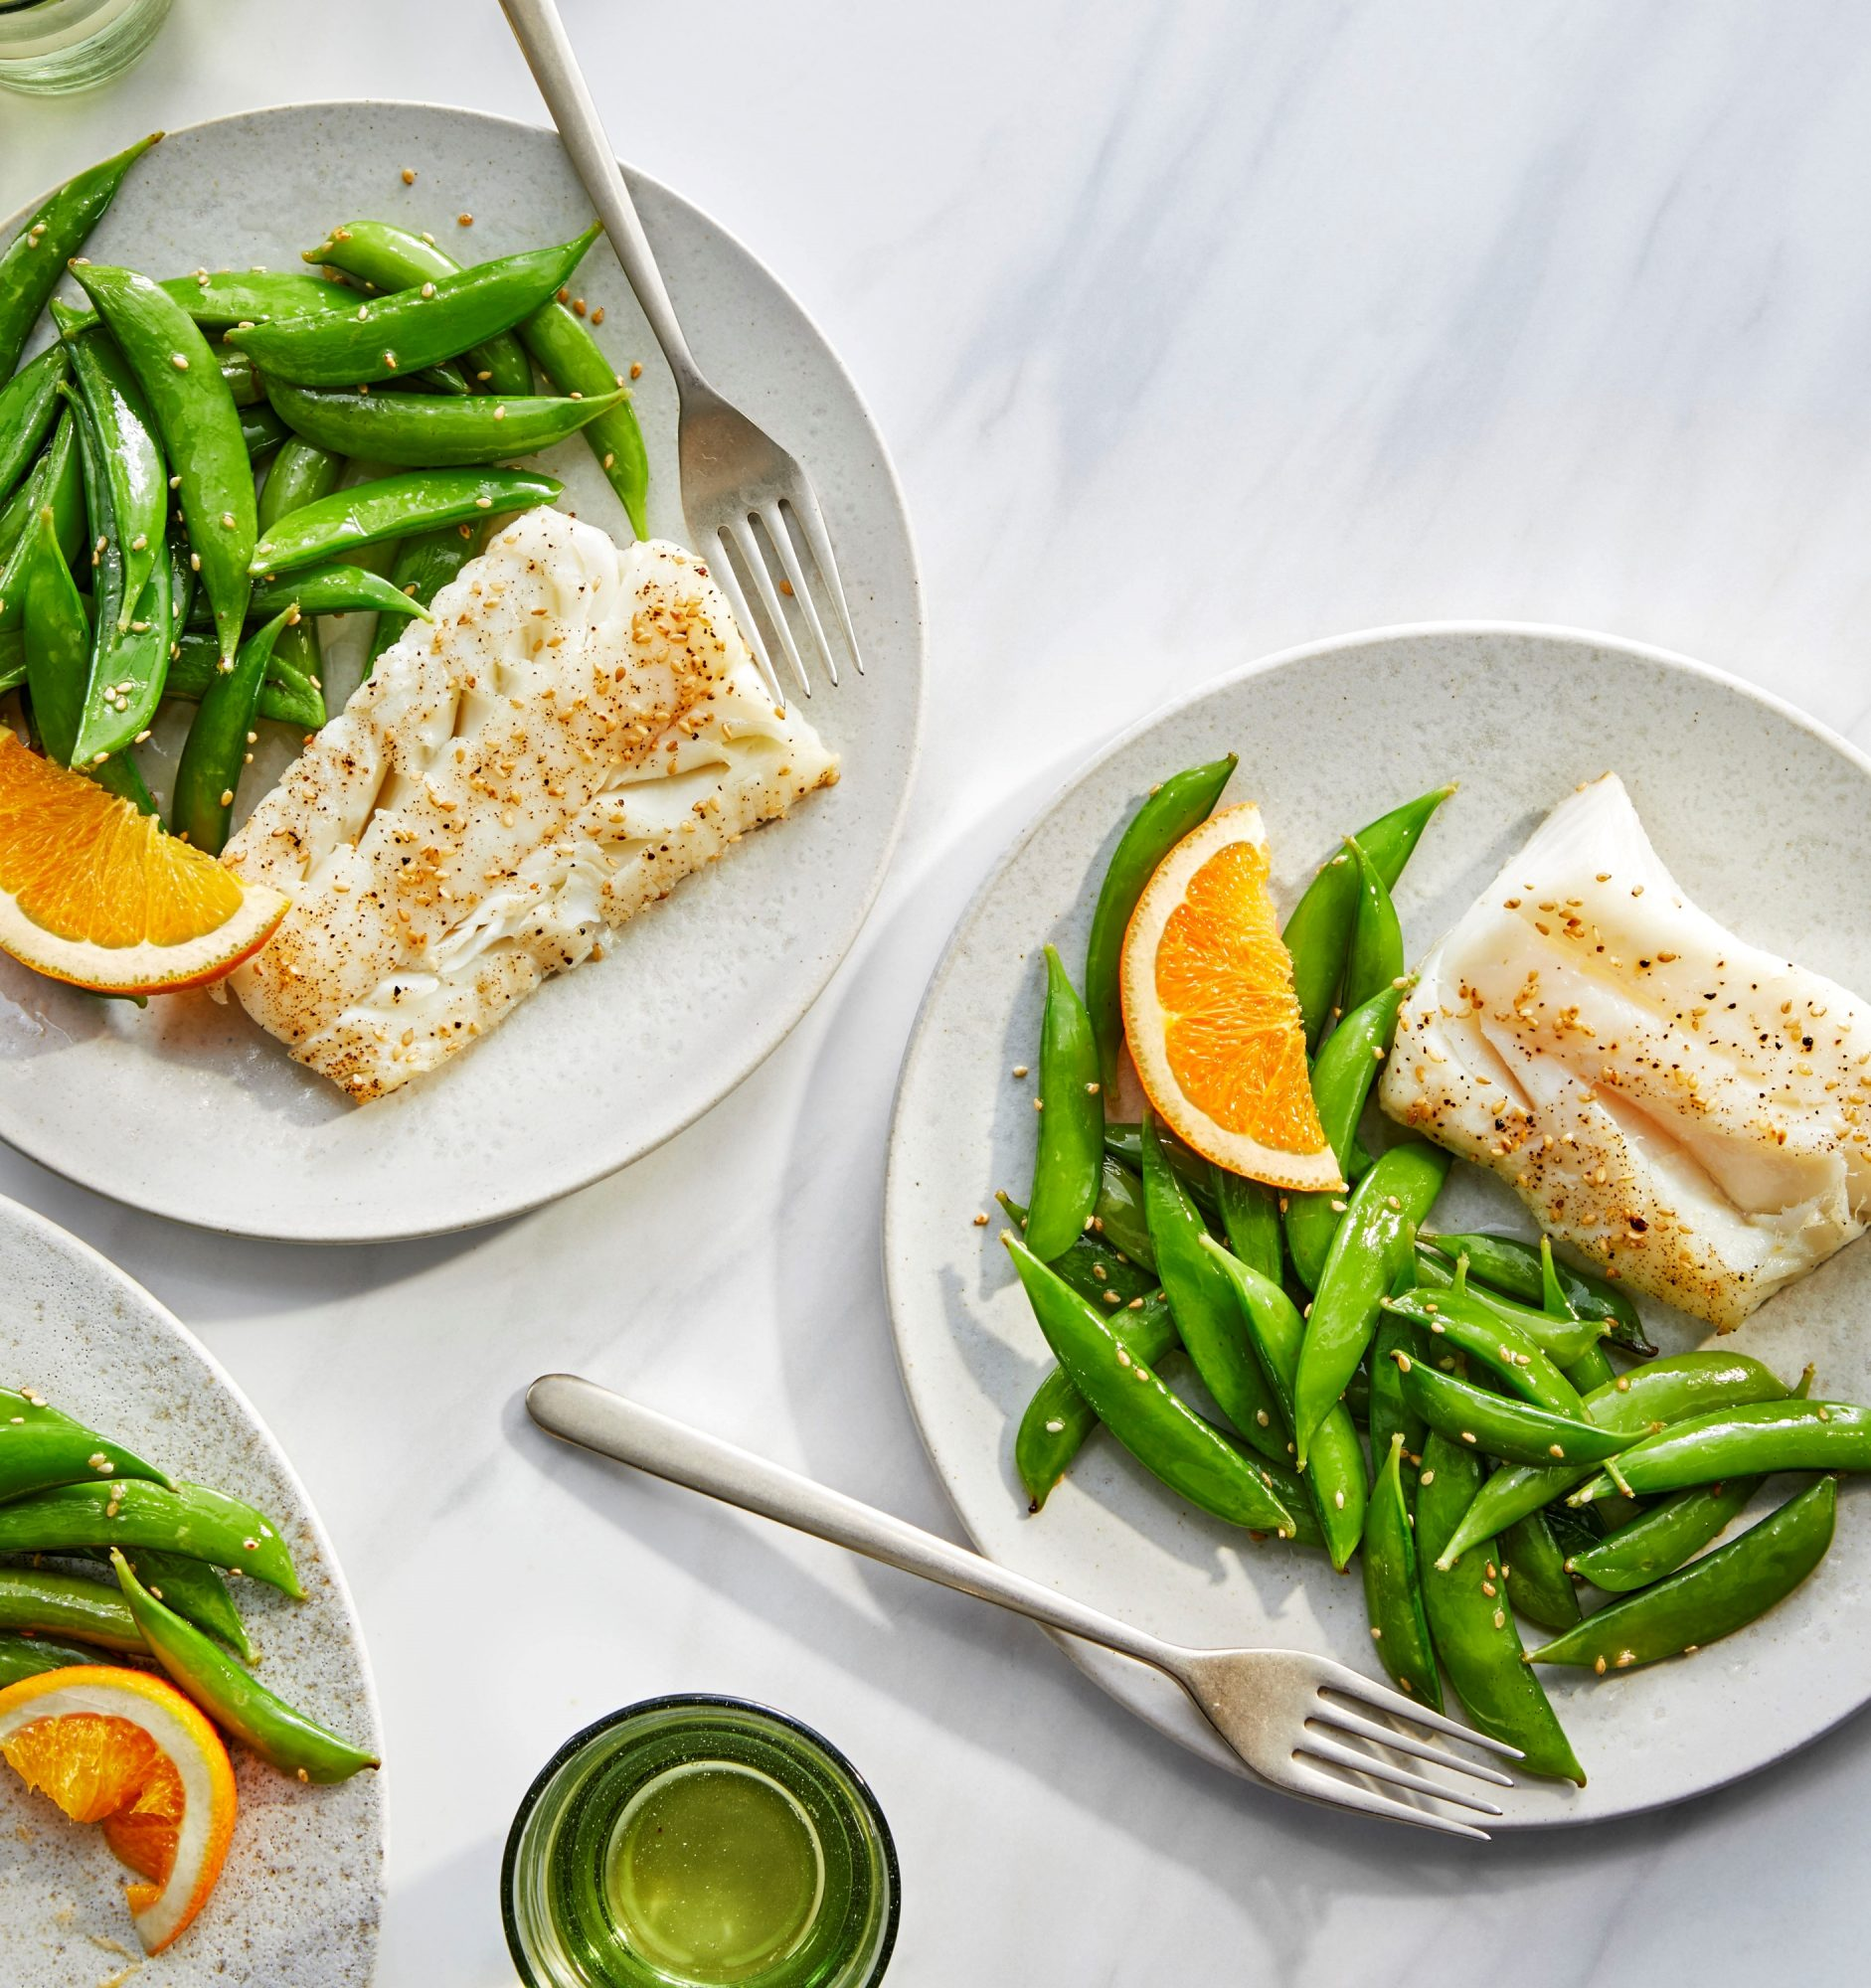 two plates of cod and snap peas garnished with orange wedges